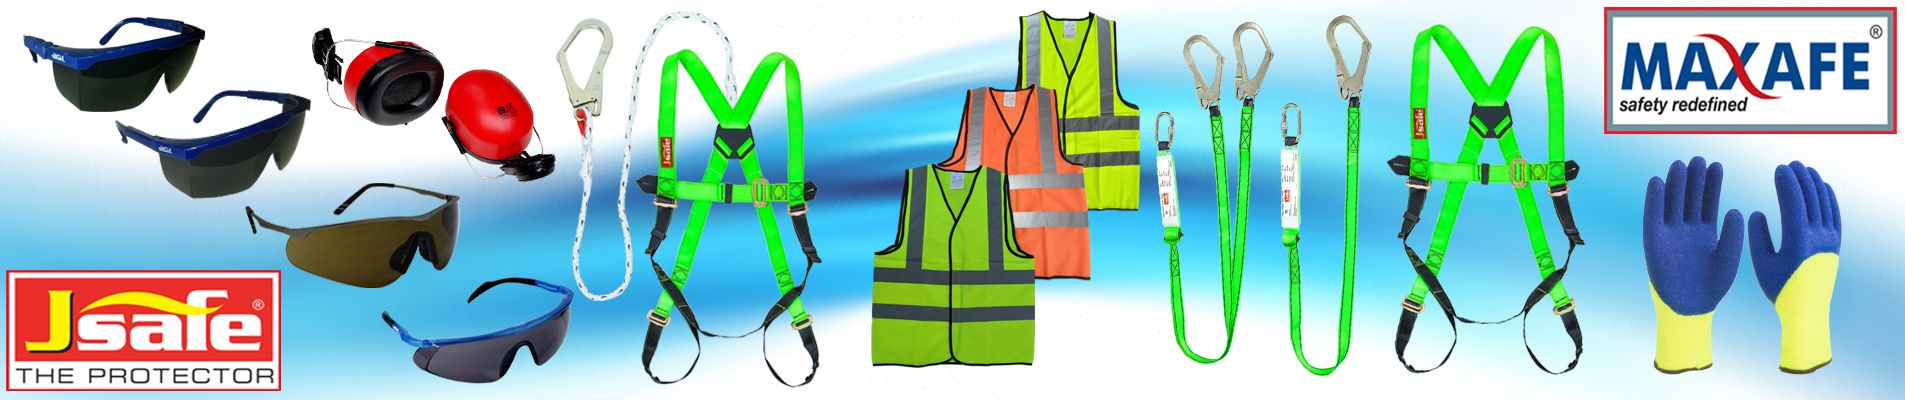 Home Industrial safety, Personal protective equipment